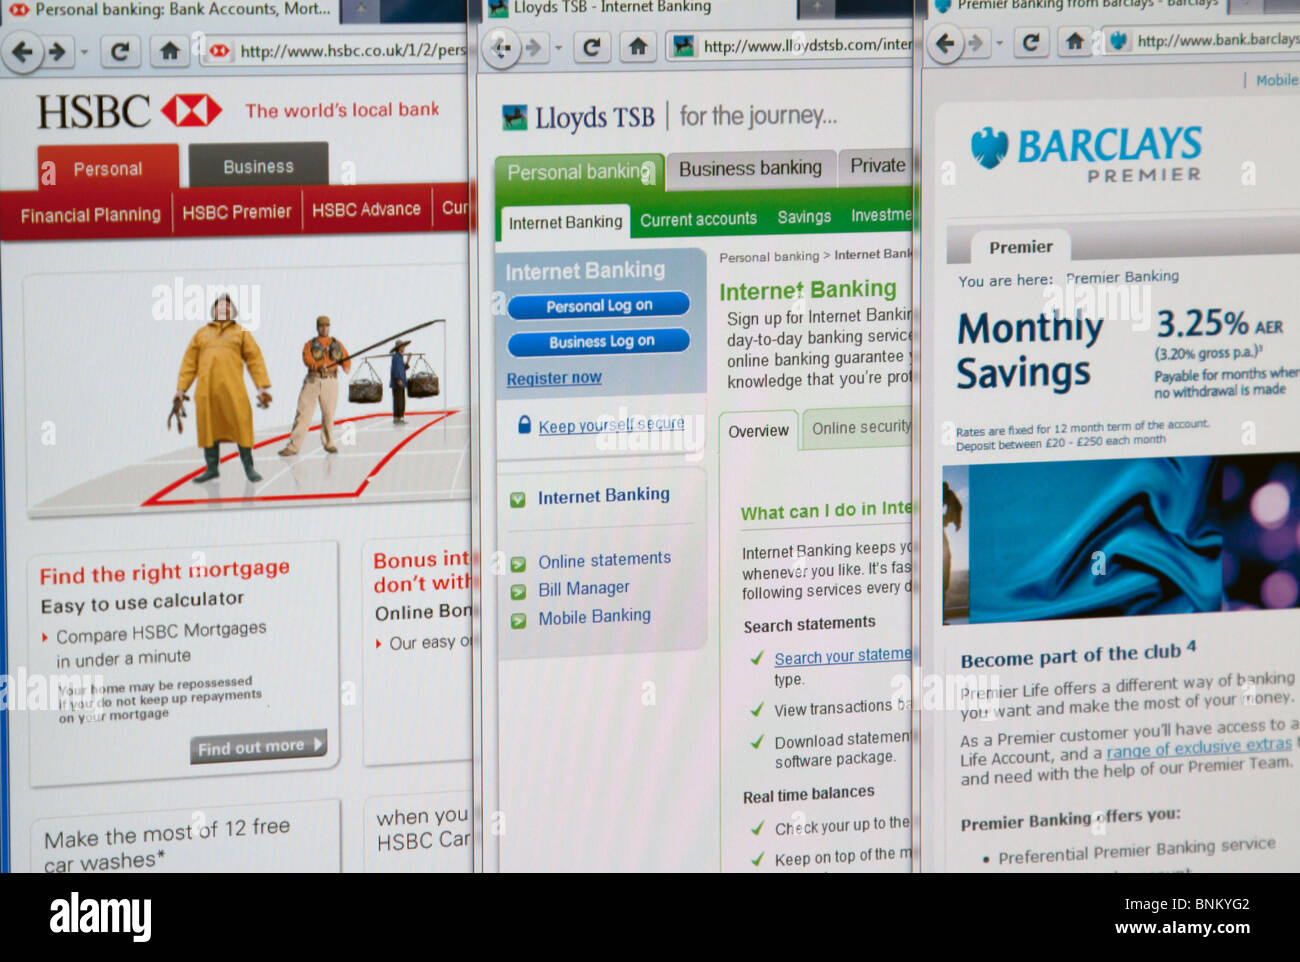 HSBC, Lloydstsb, Barclays websites homepages. - Stock Image